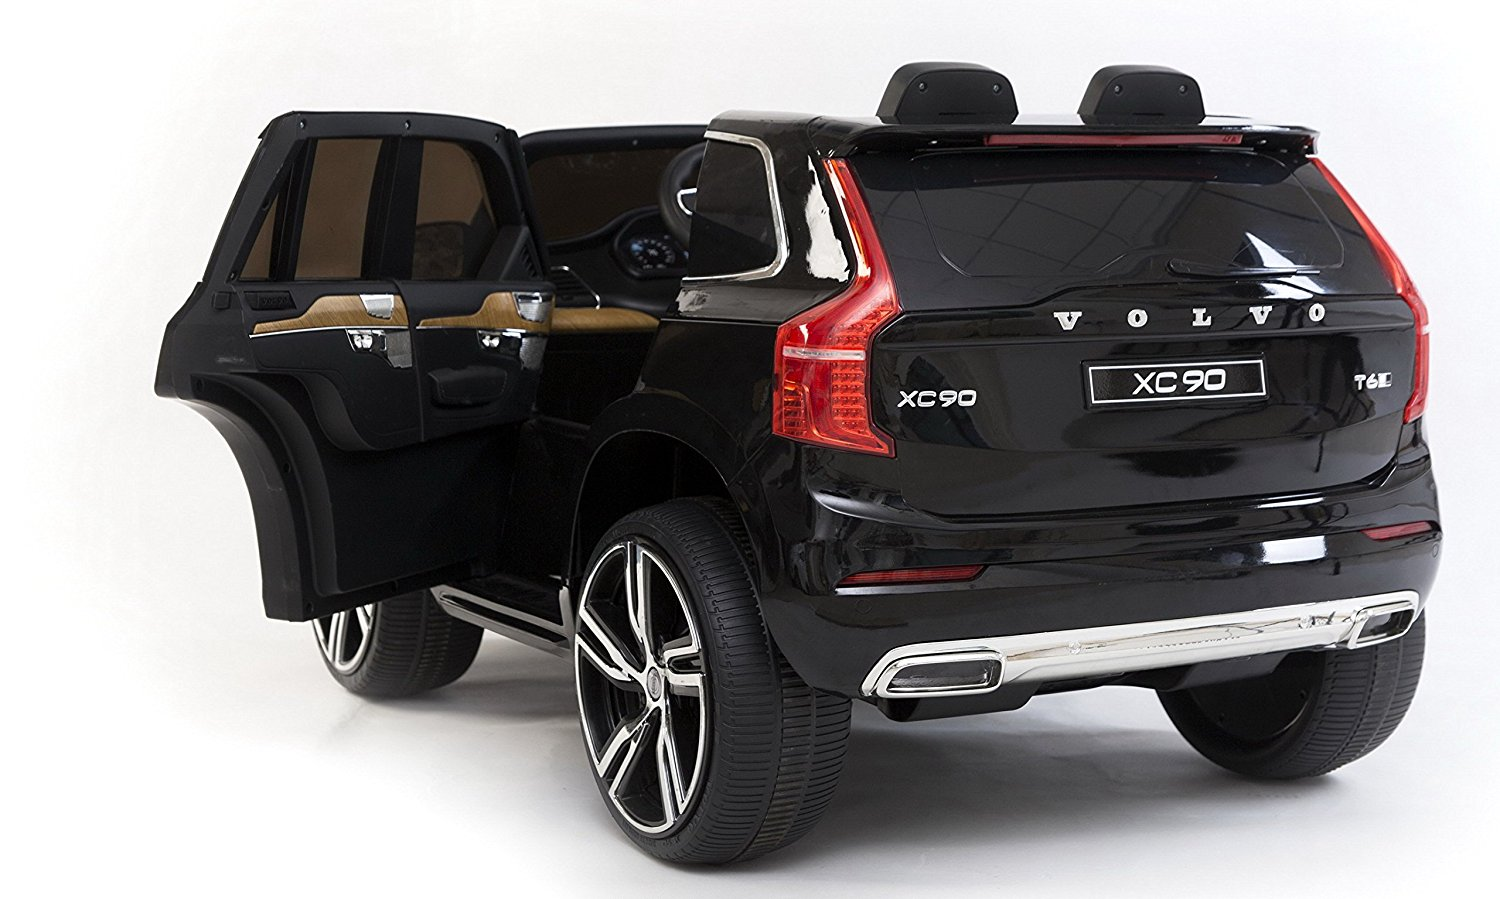 12v volvo xc90 kinder elektro auto zweistizer schwarz kinderauto online shop. Black Bedroom Furniture Sets. Home Design Ideas